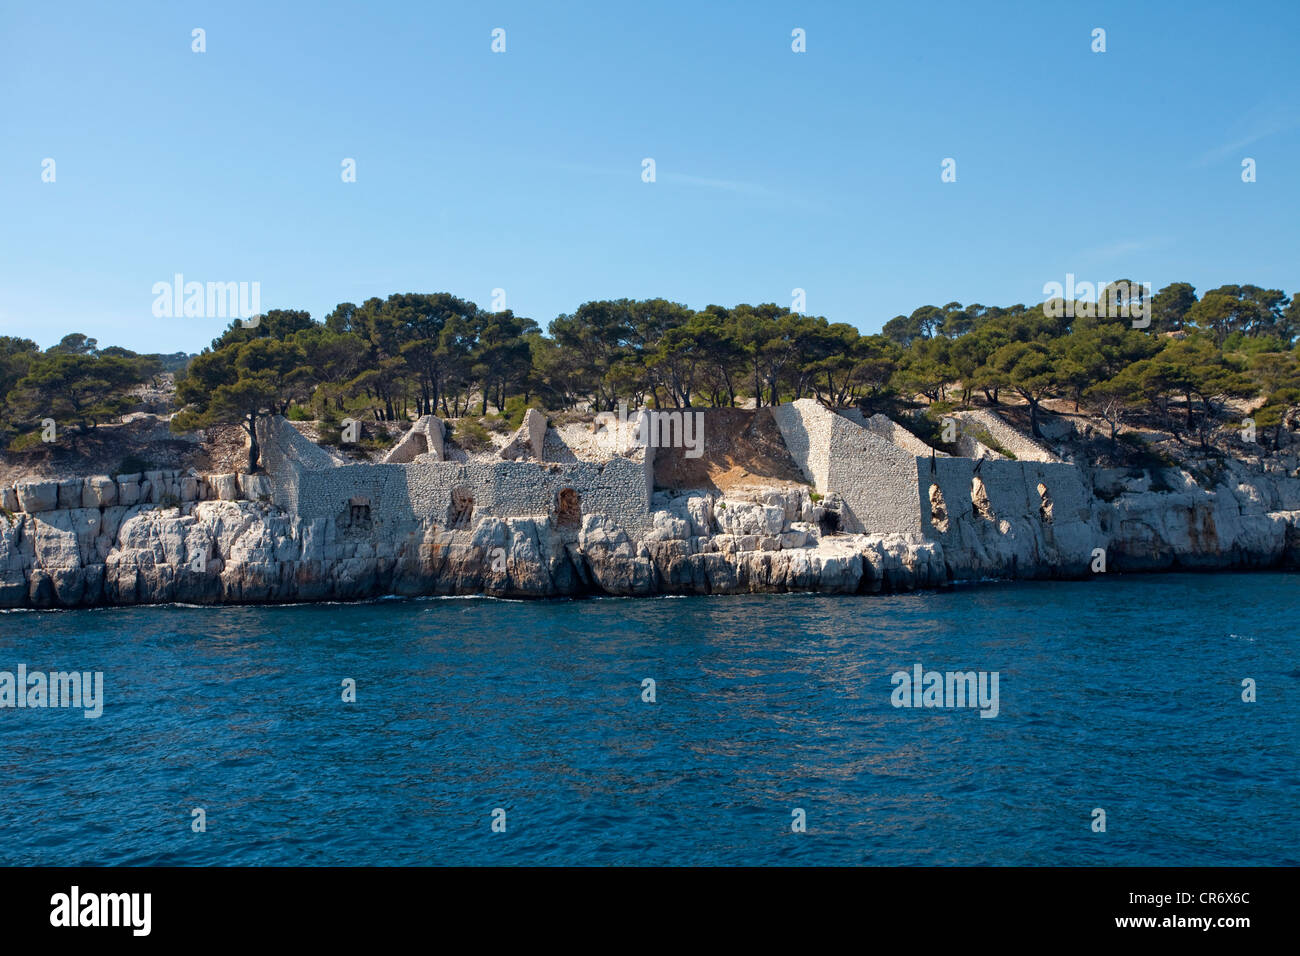 Ruins of settlements of past centuries near Calanque de Port Miou, , Bouches-du-Rhone department, French Riviera - Stock Image